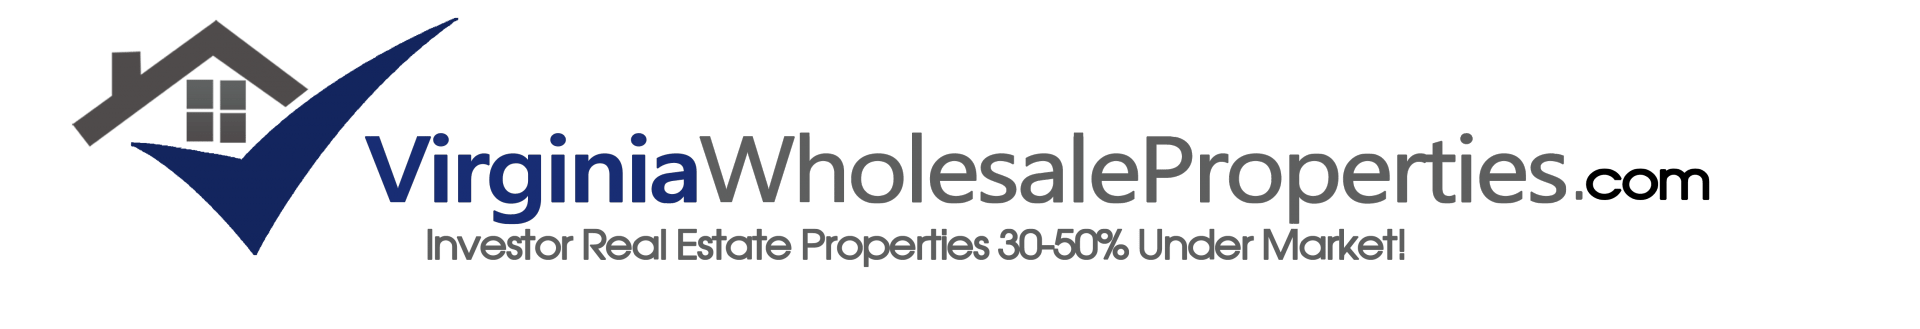 Virginia Wholesale Properties logo